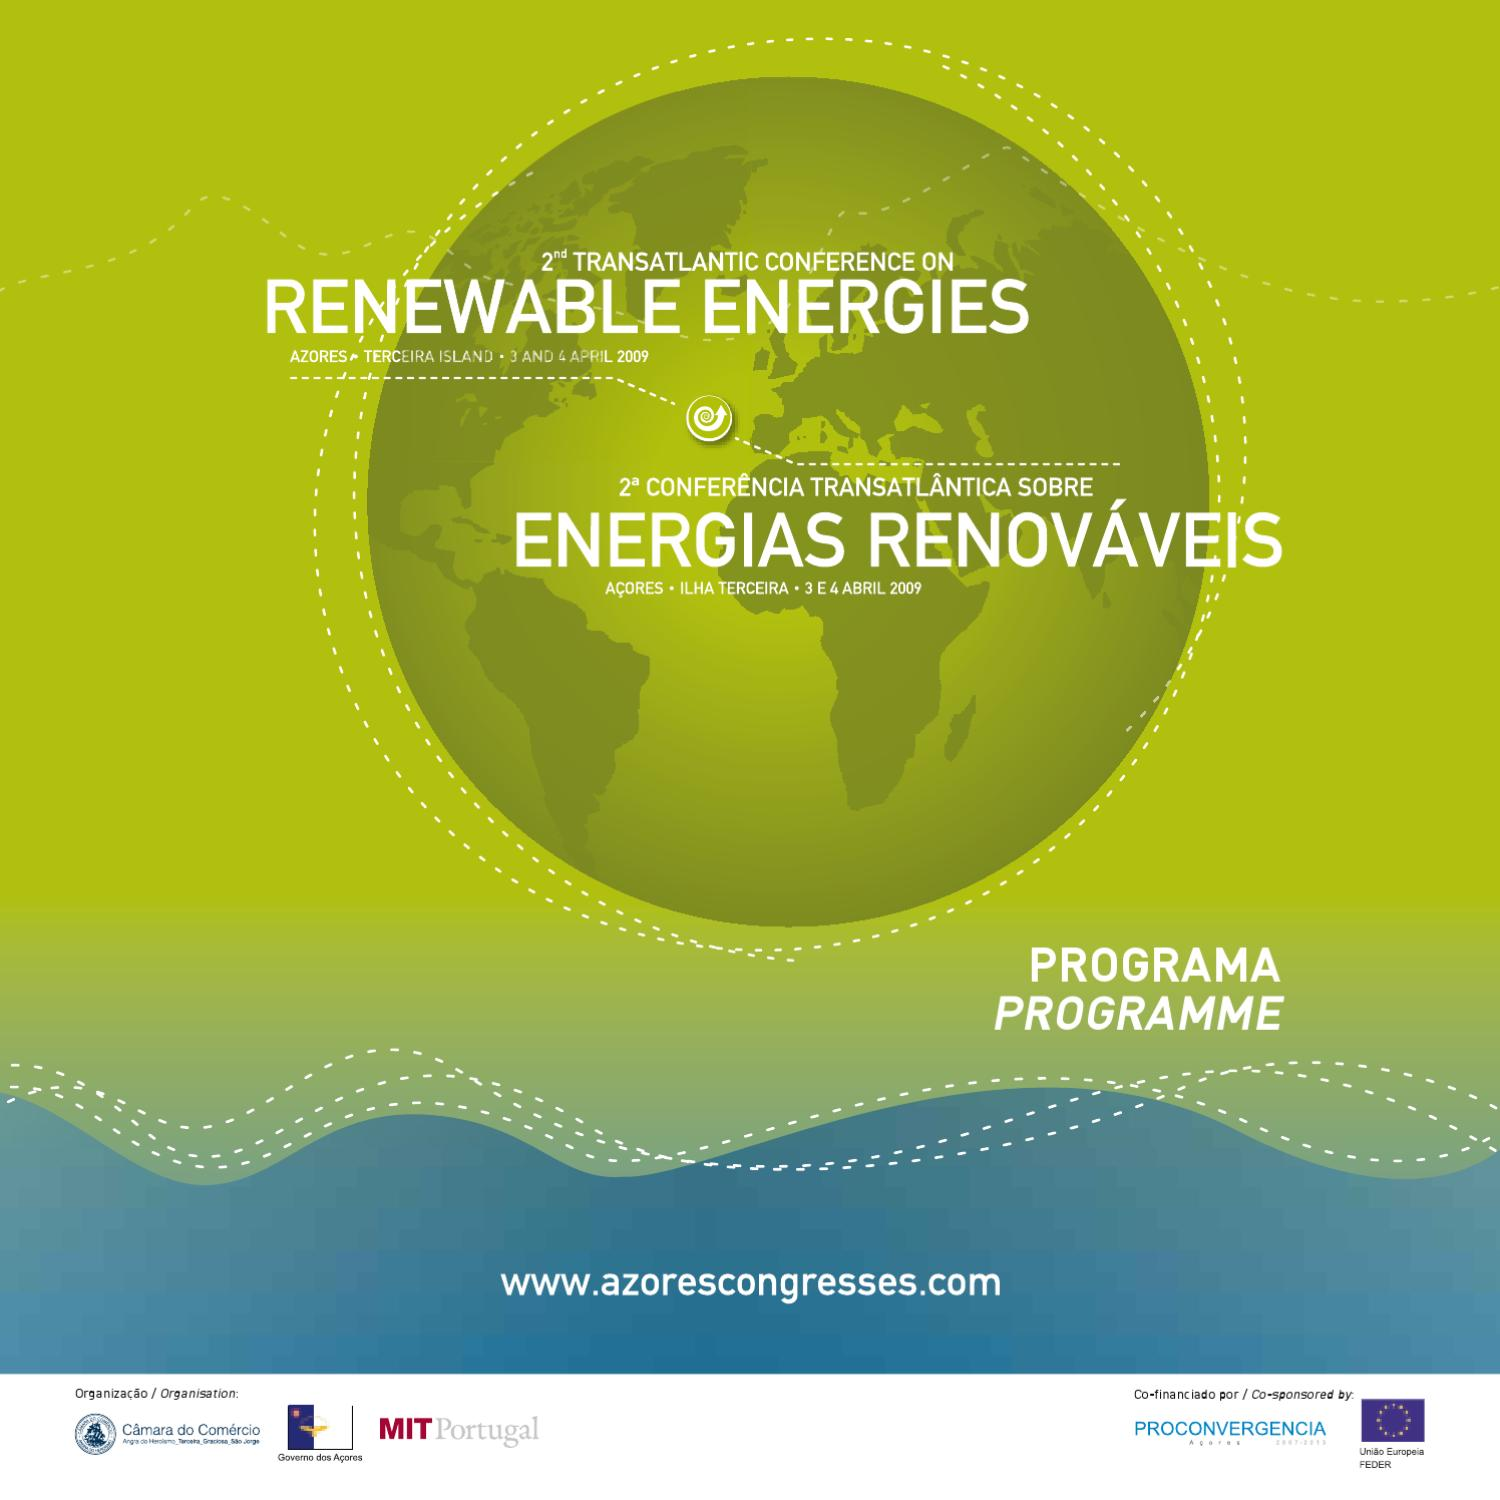 Renewable Energy Events promoted by Paulo Casaca